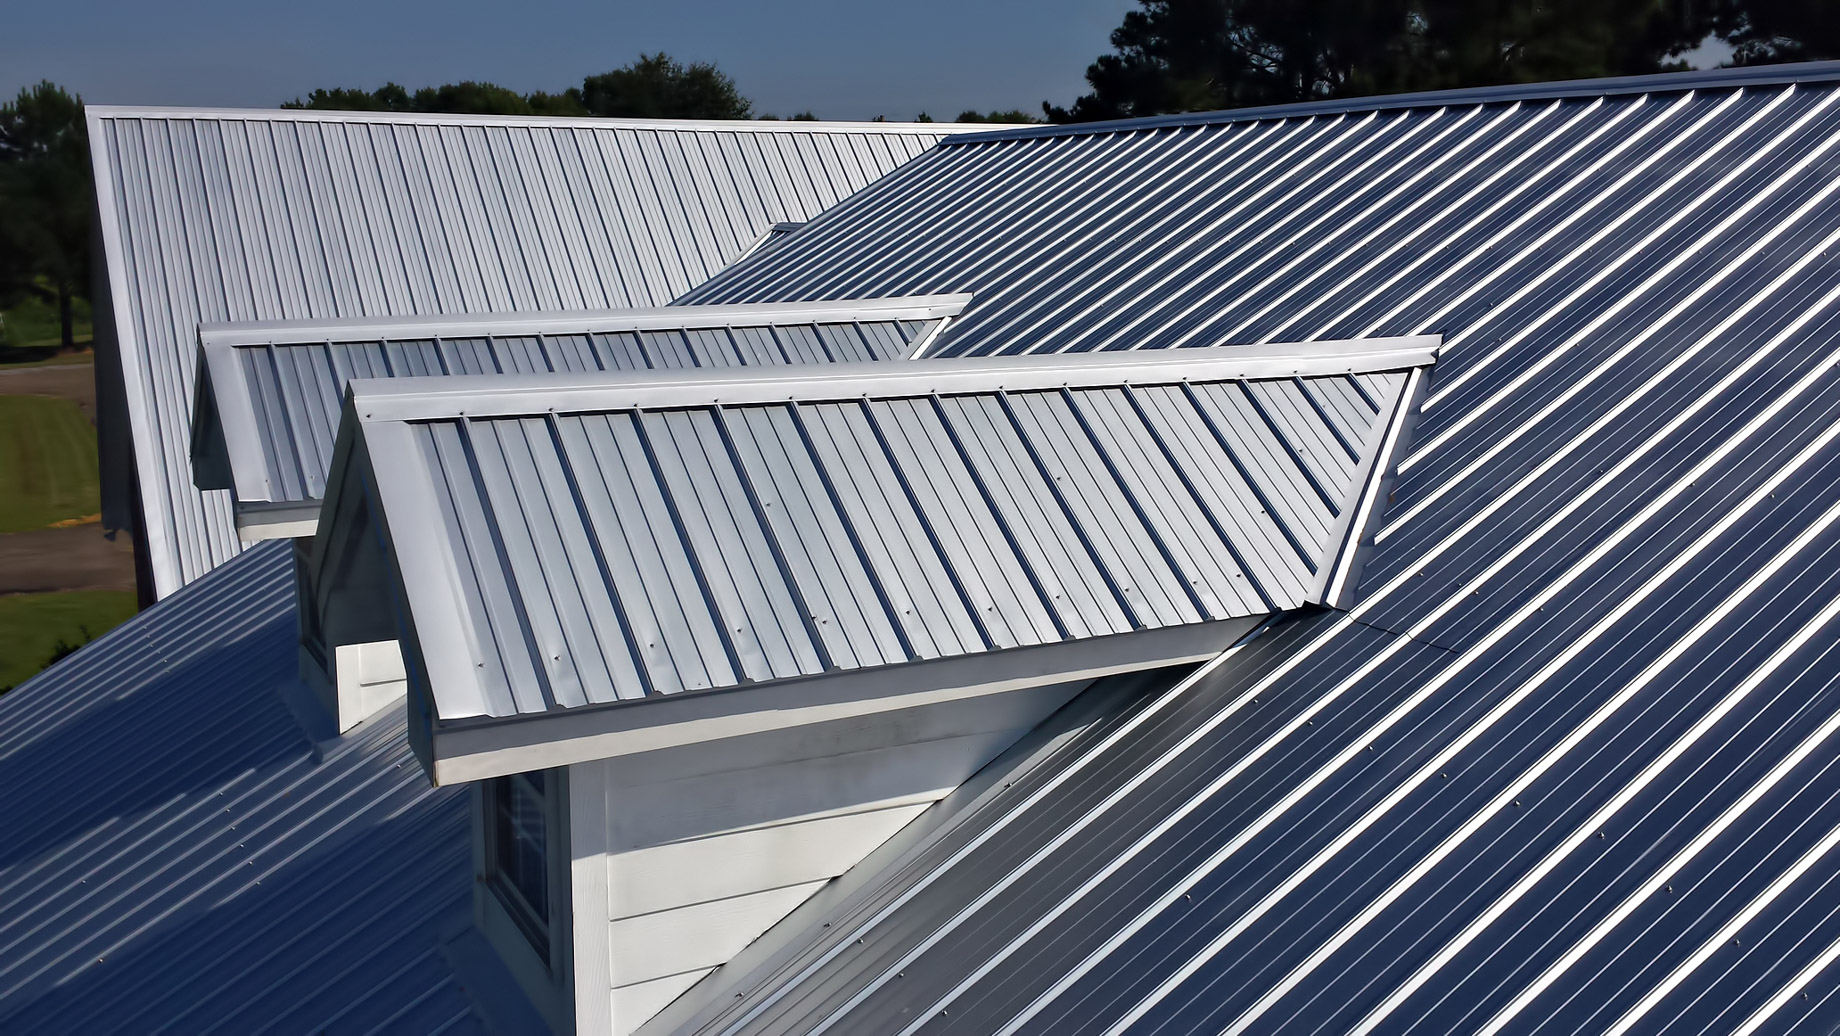 New Metal Roof - Home Upgrades - Top 3 Roofing Materials Modern Builders Are Using